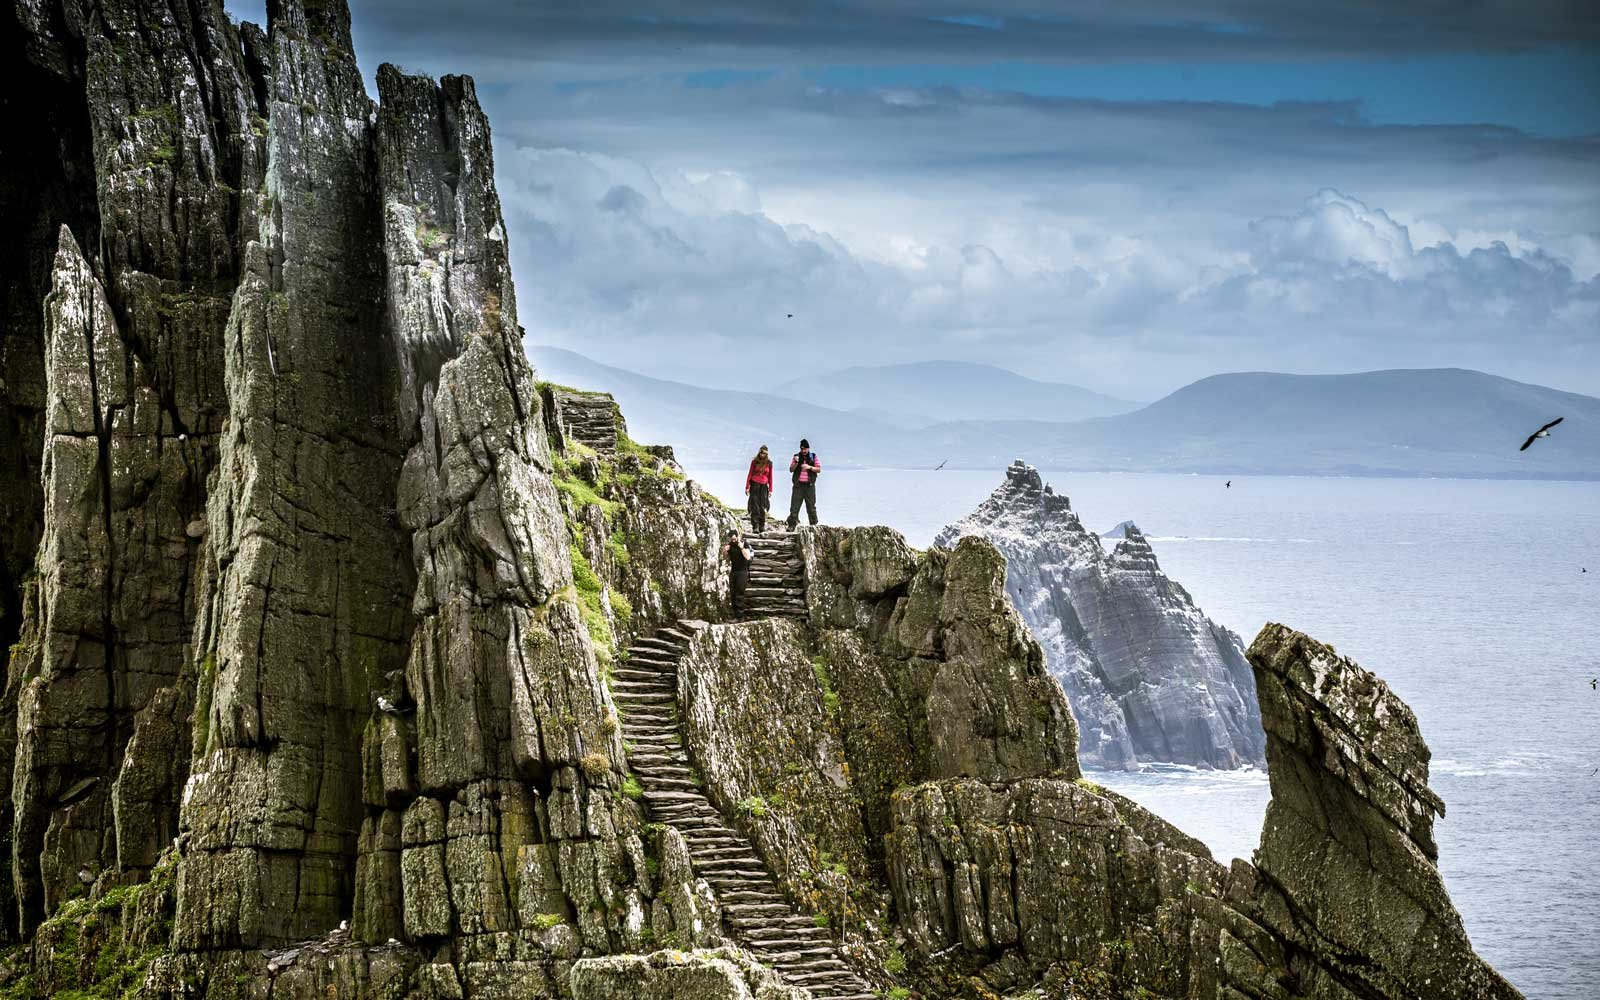 UNESCO Skellig Rocks, site of filming in Star Wars movies